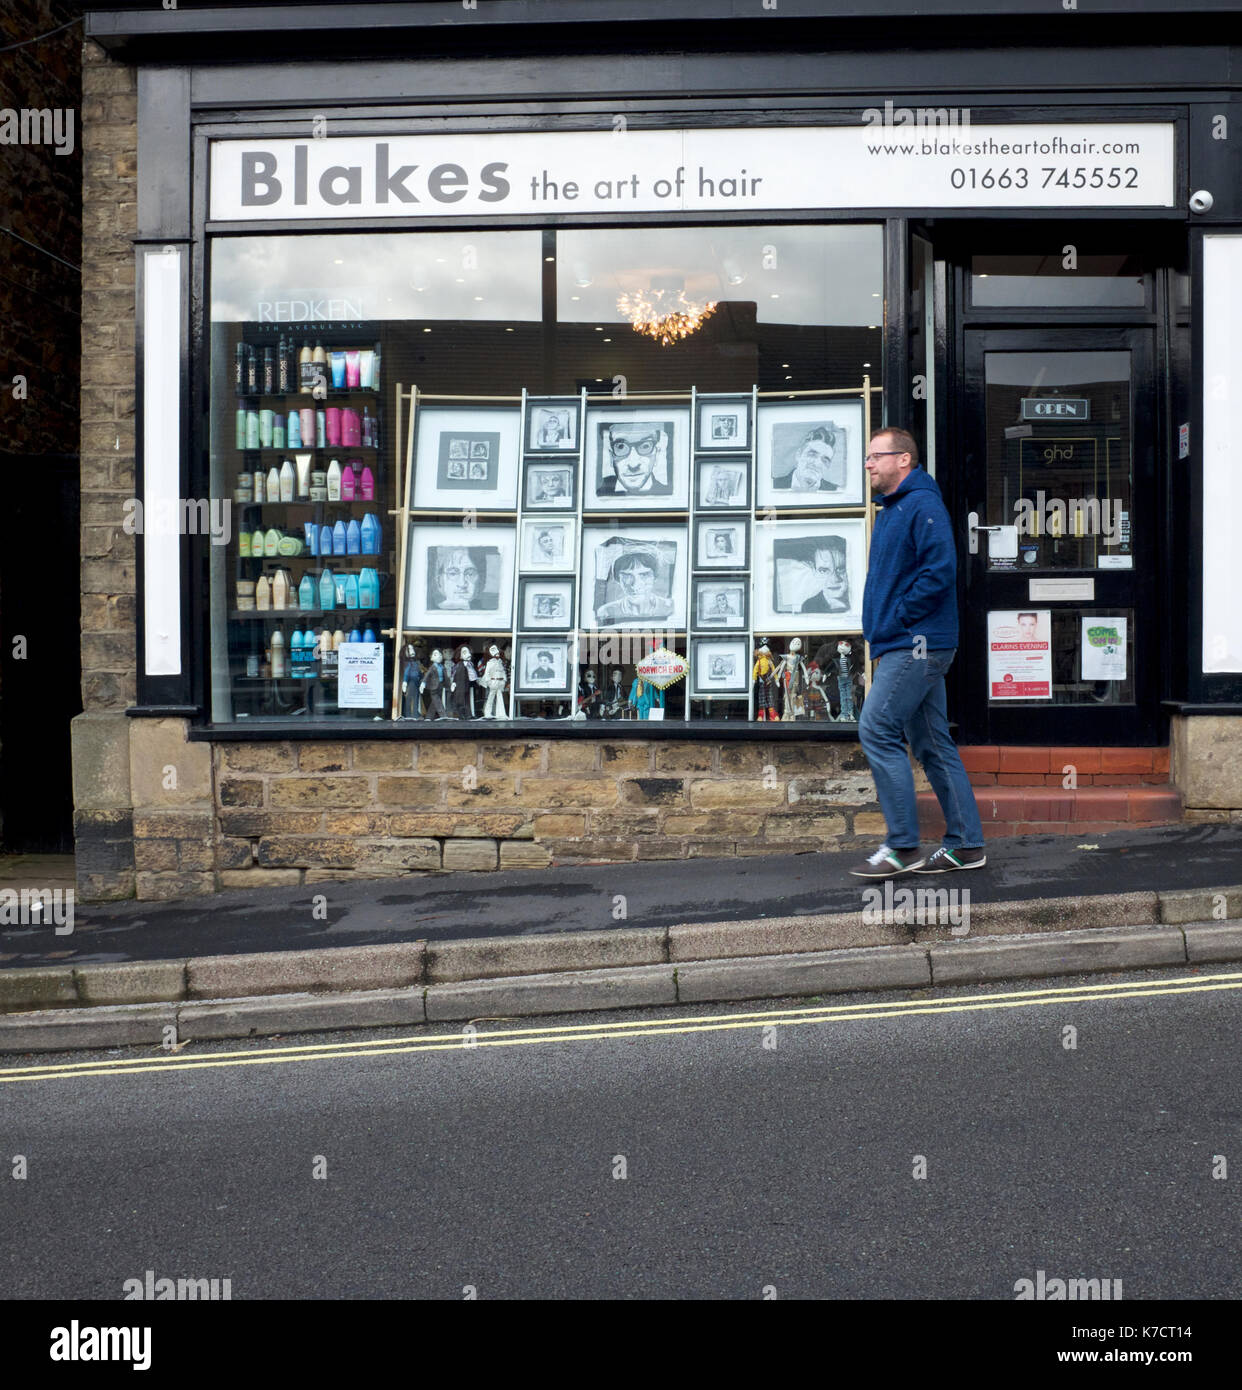 Shops in New Mills, Derbyshire take part in the Art Trail